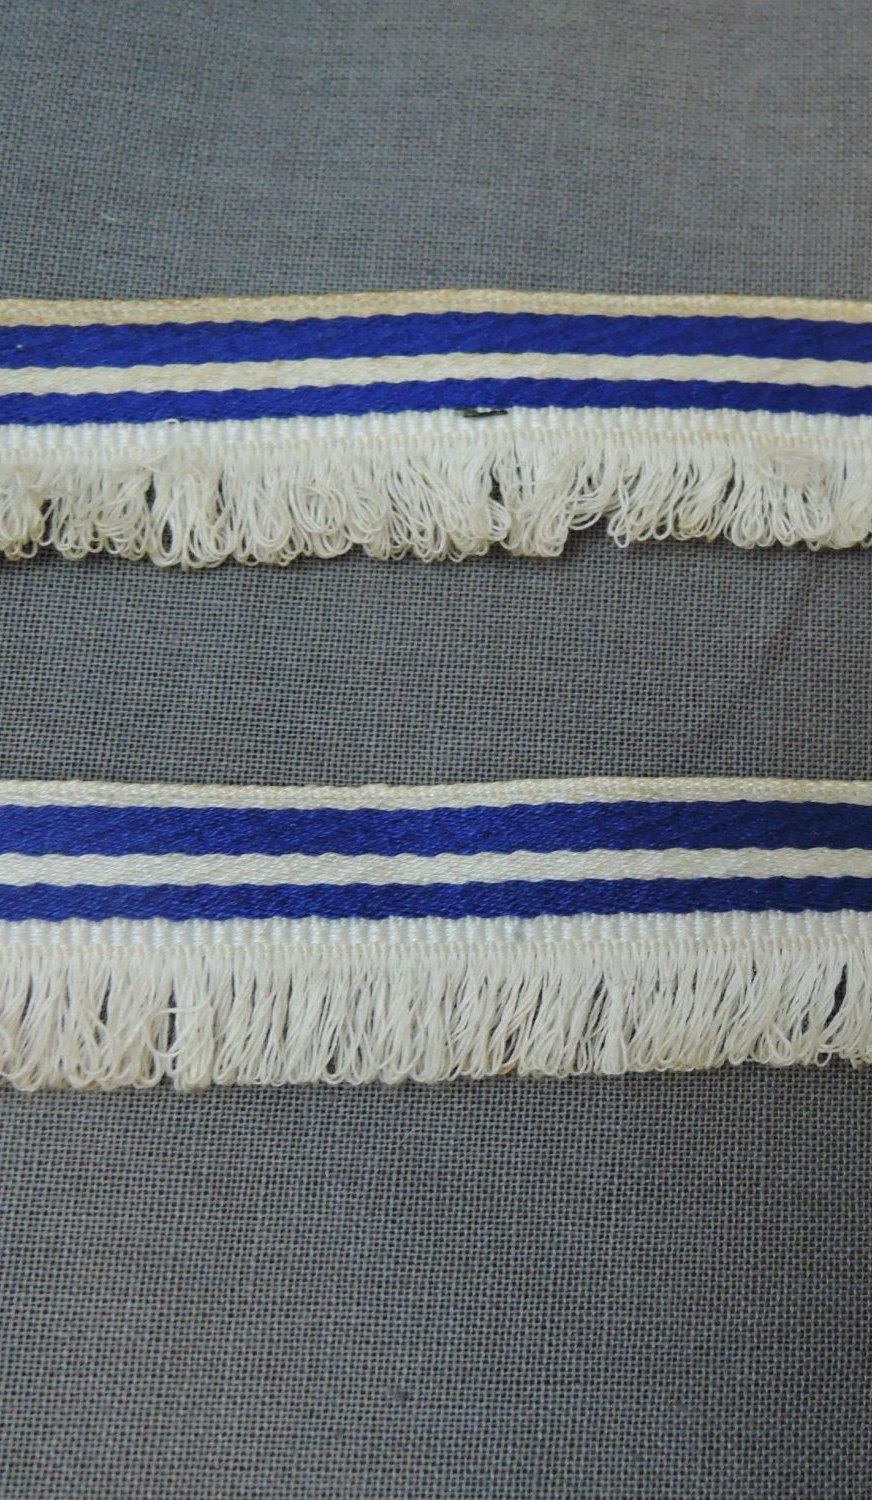 Vintage Woven Ribbon Trim, Blue Striped Cotton with Fringe, 2 yards